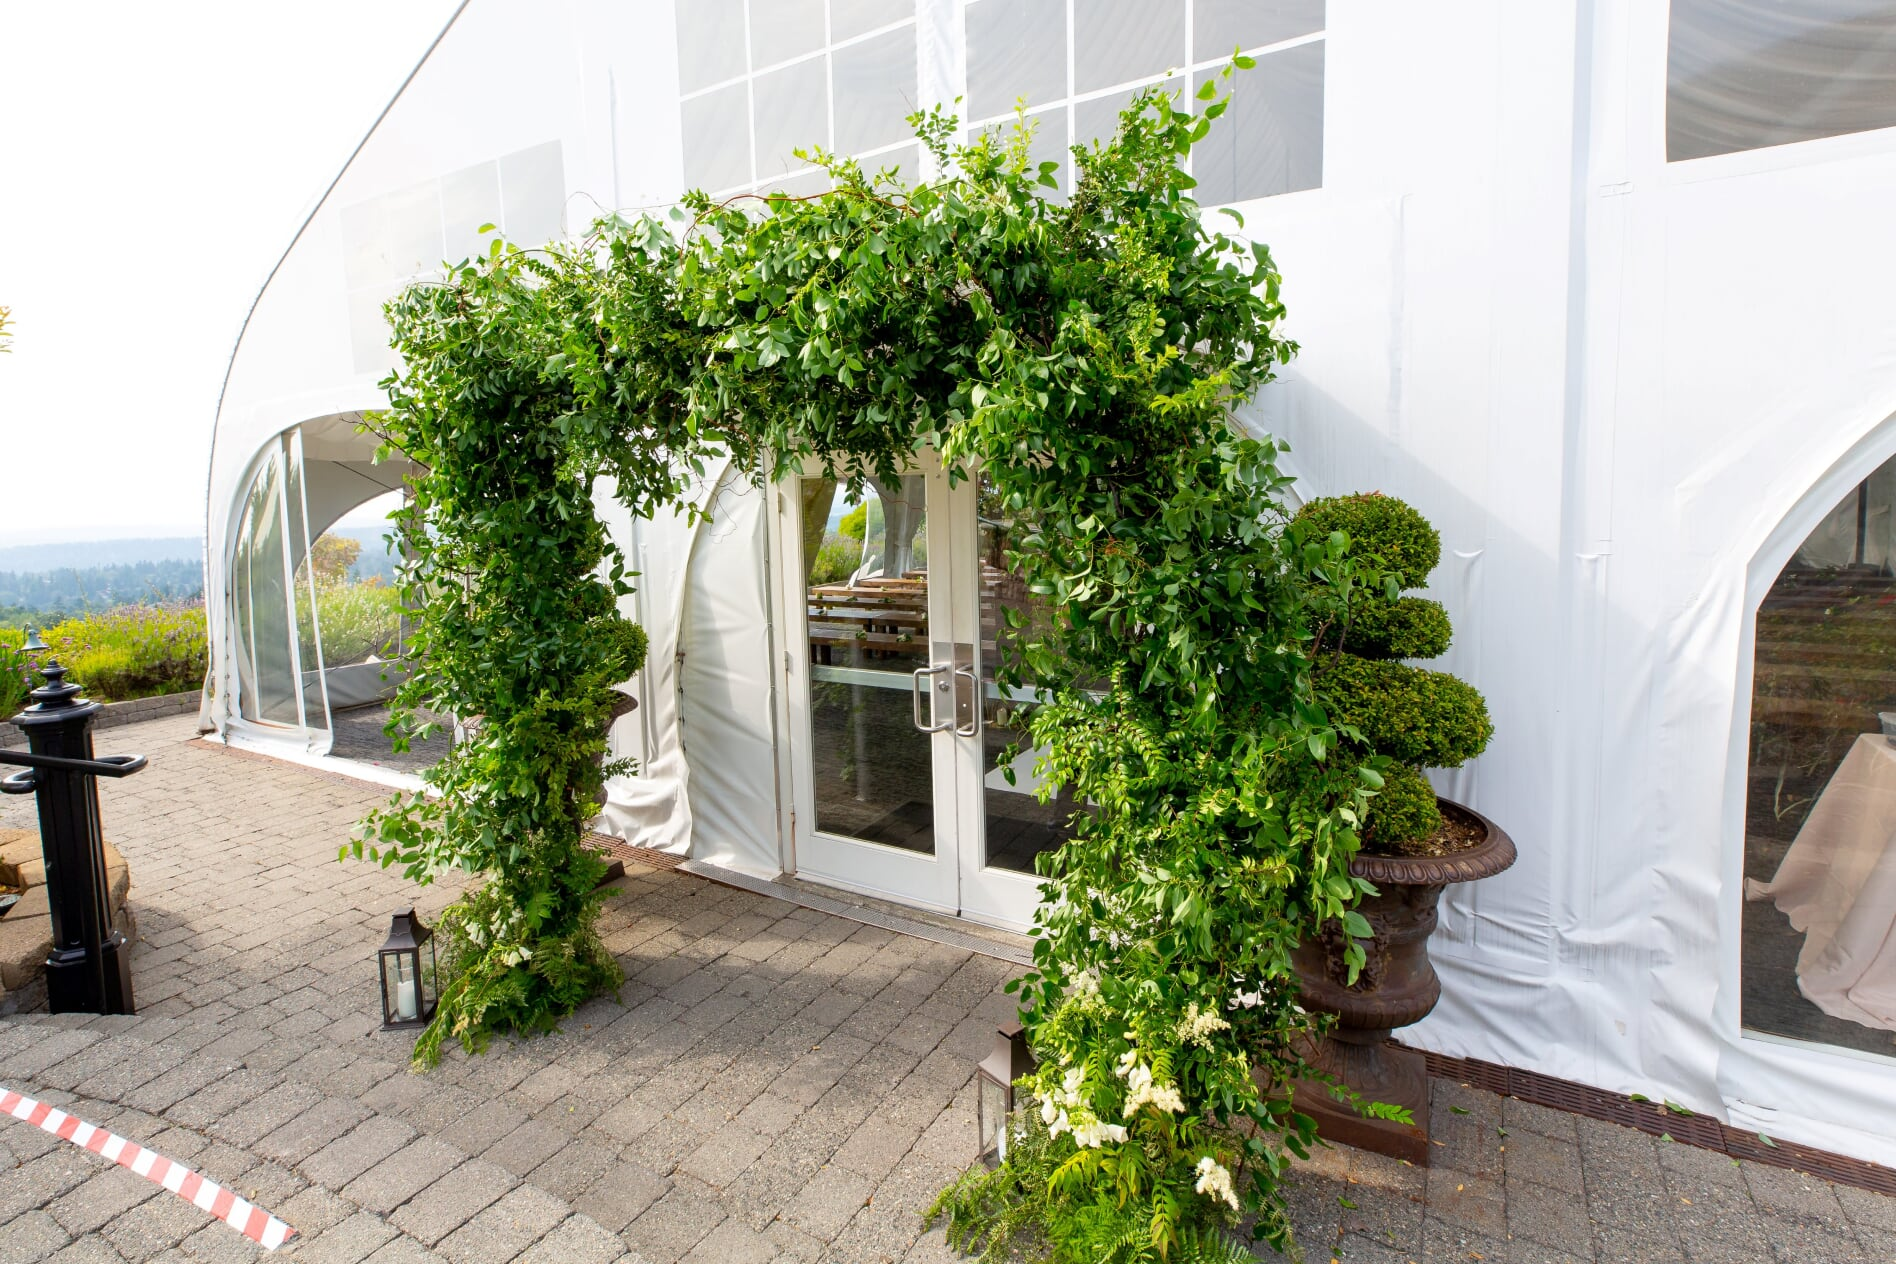 Greenery entrance arch in front of white tent